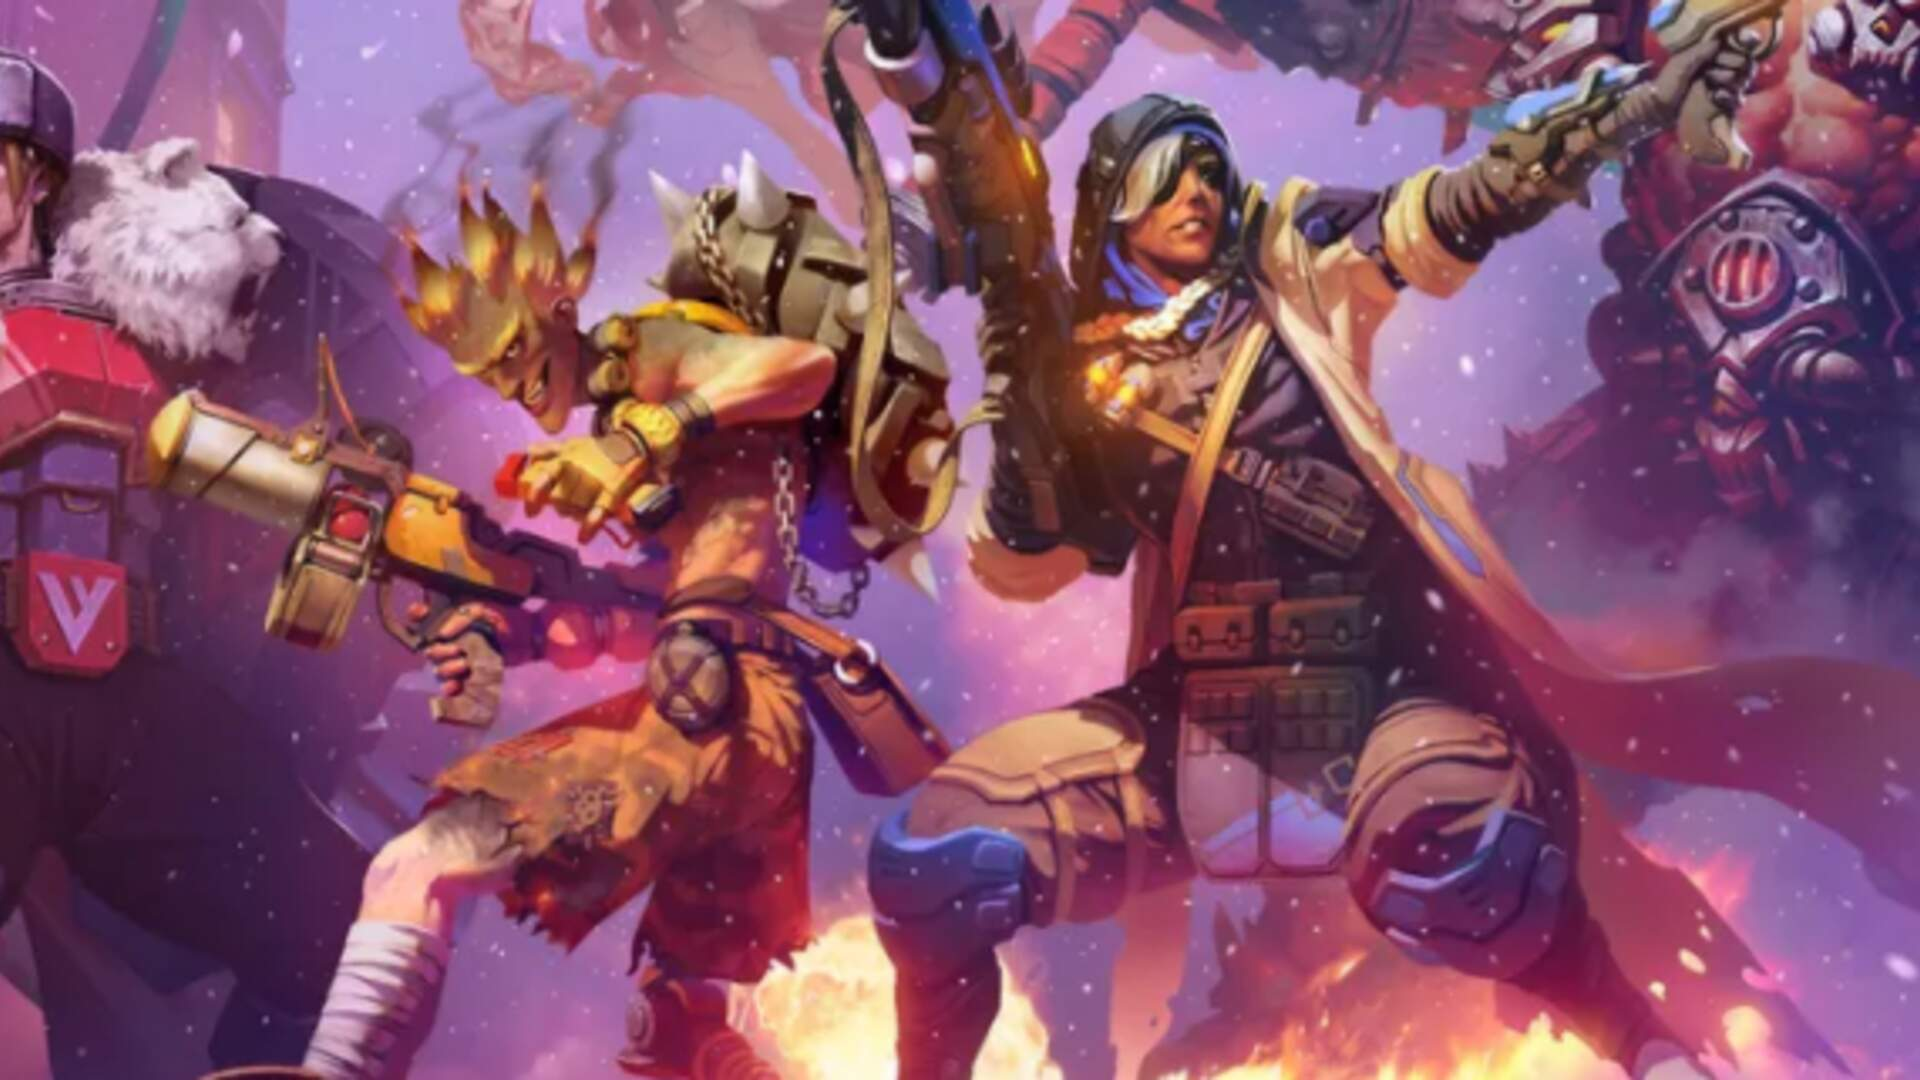 Ana and Junkrat Join Heroes of the Storm, Continuing Overwatch's Slow Takeover of Blizzard